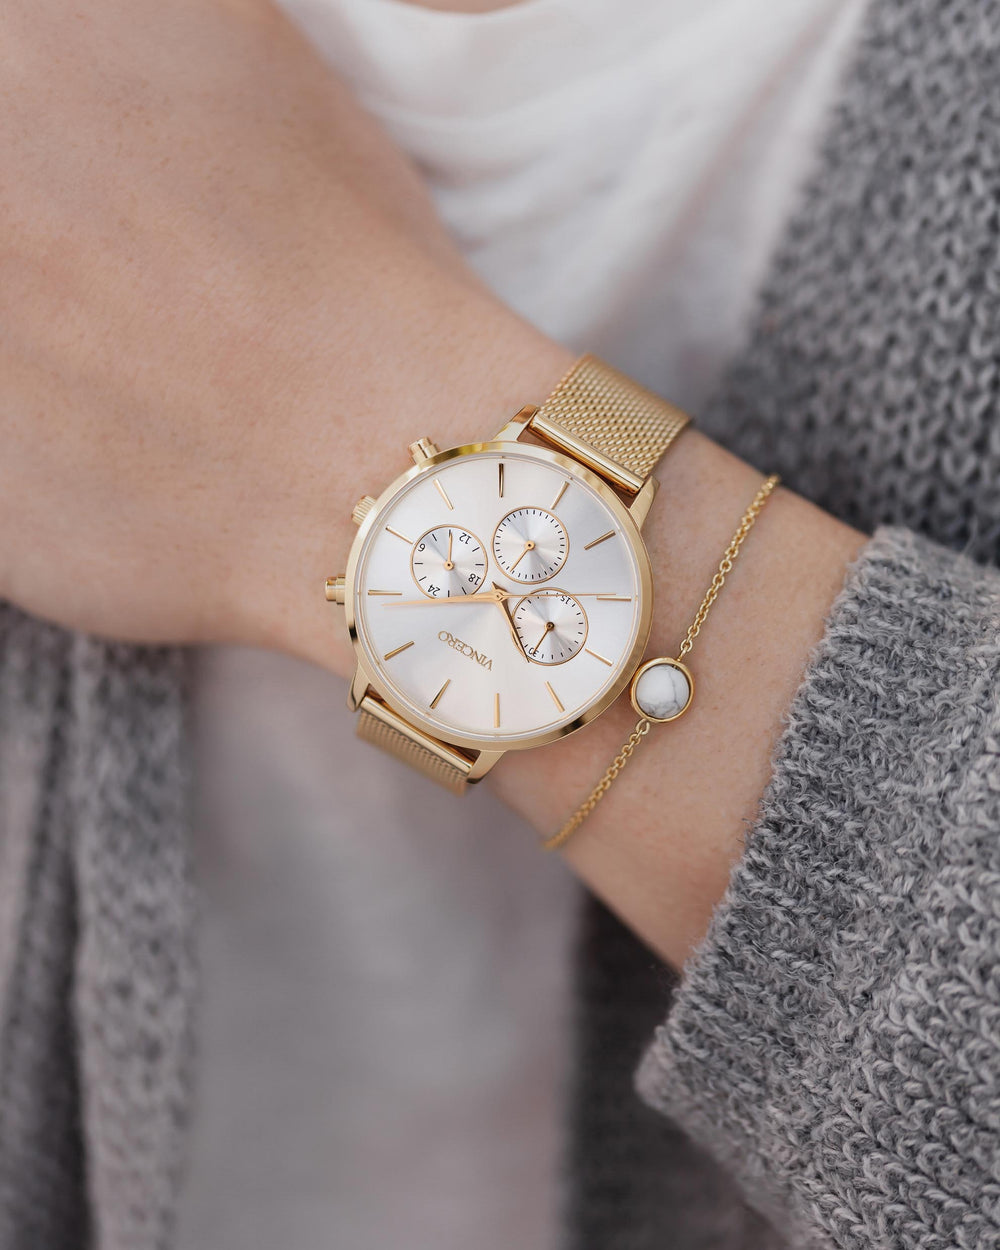 Women's Luxury Kleio Chronograph Watch Gold Stainless Steel Mesh Strap Band Silver Watch Face Gold Case Clasp